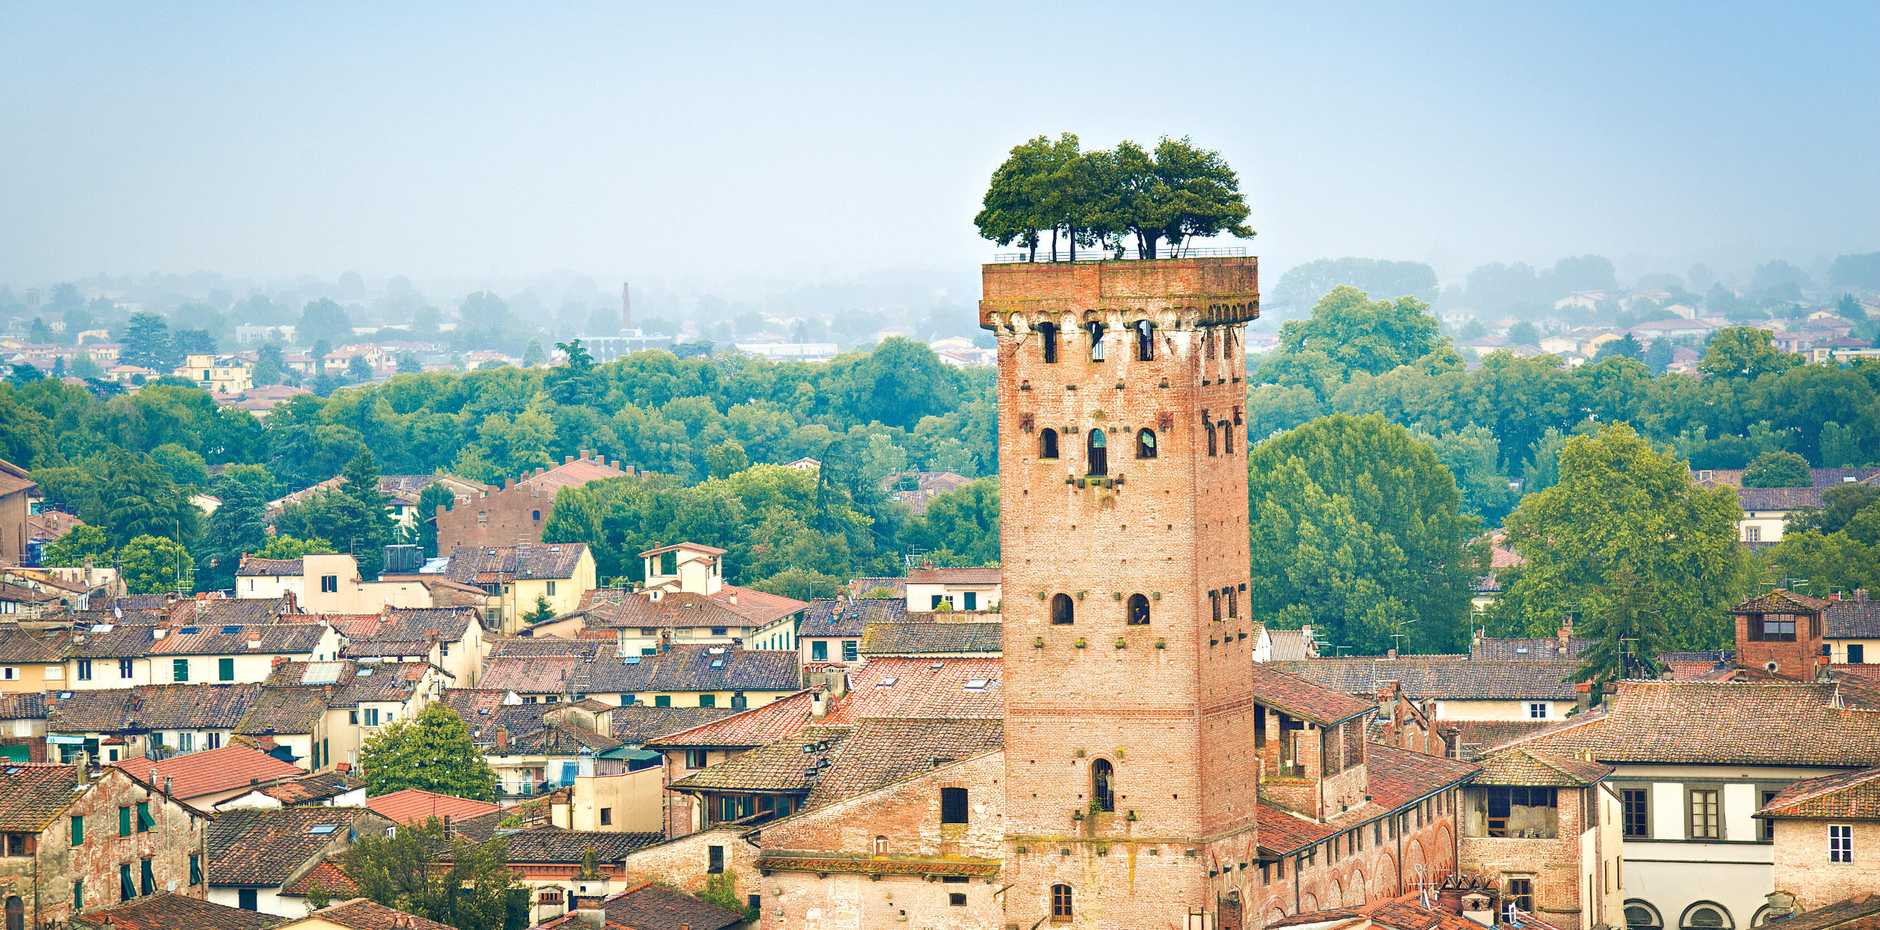 Torre Guinigi lookout tower in Lucca old town (Tuscany, Italy).